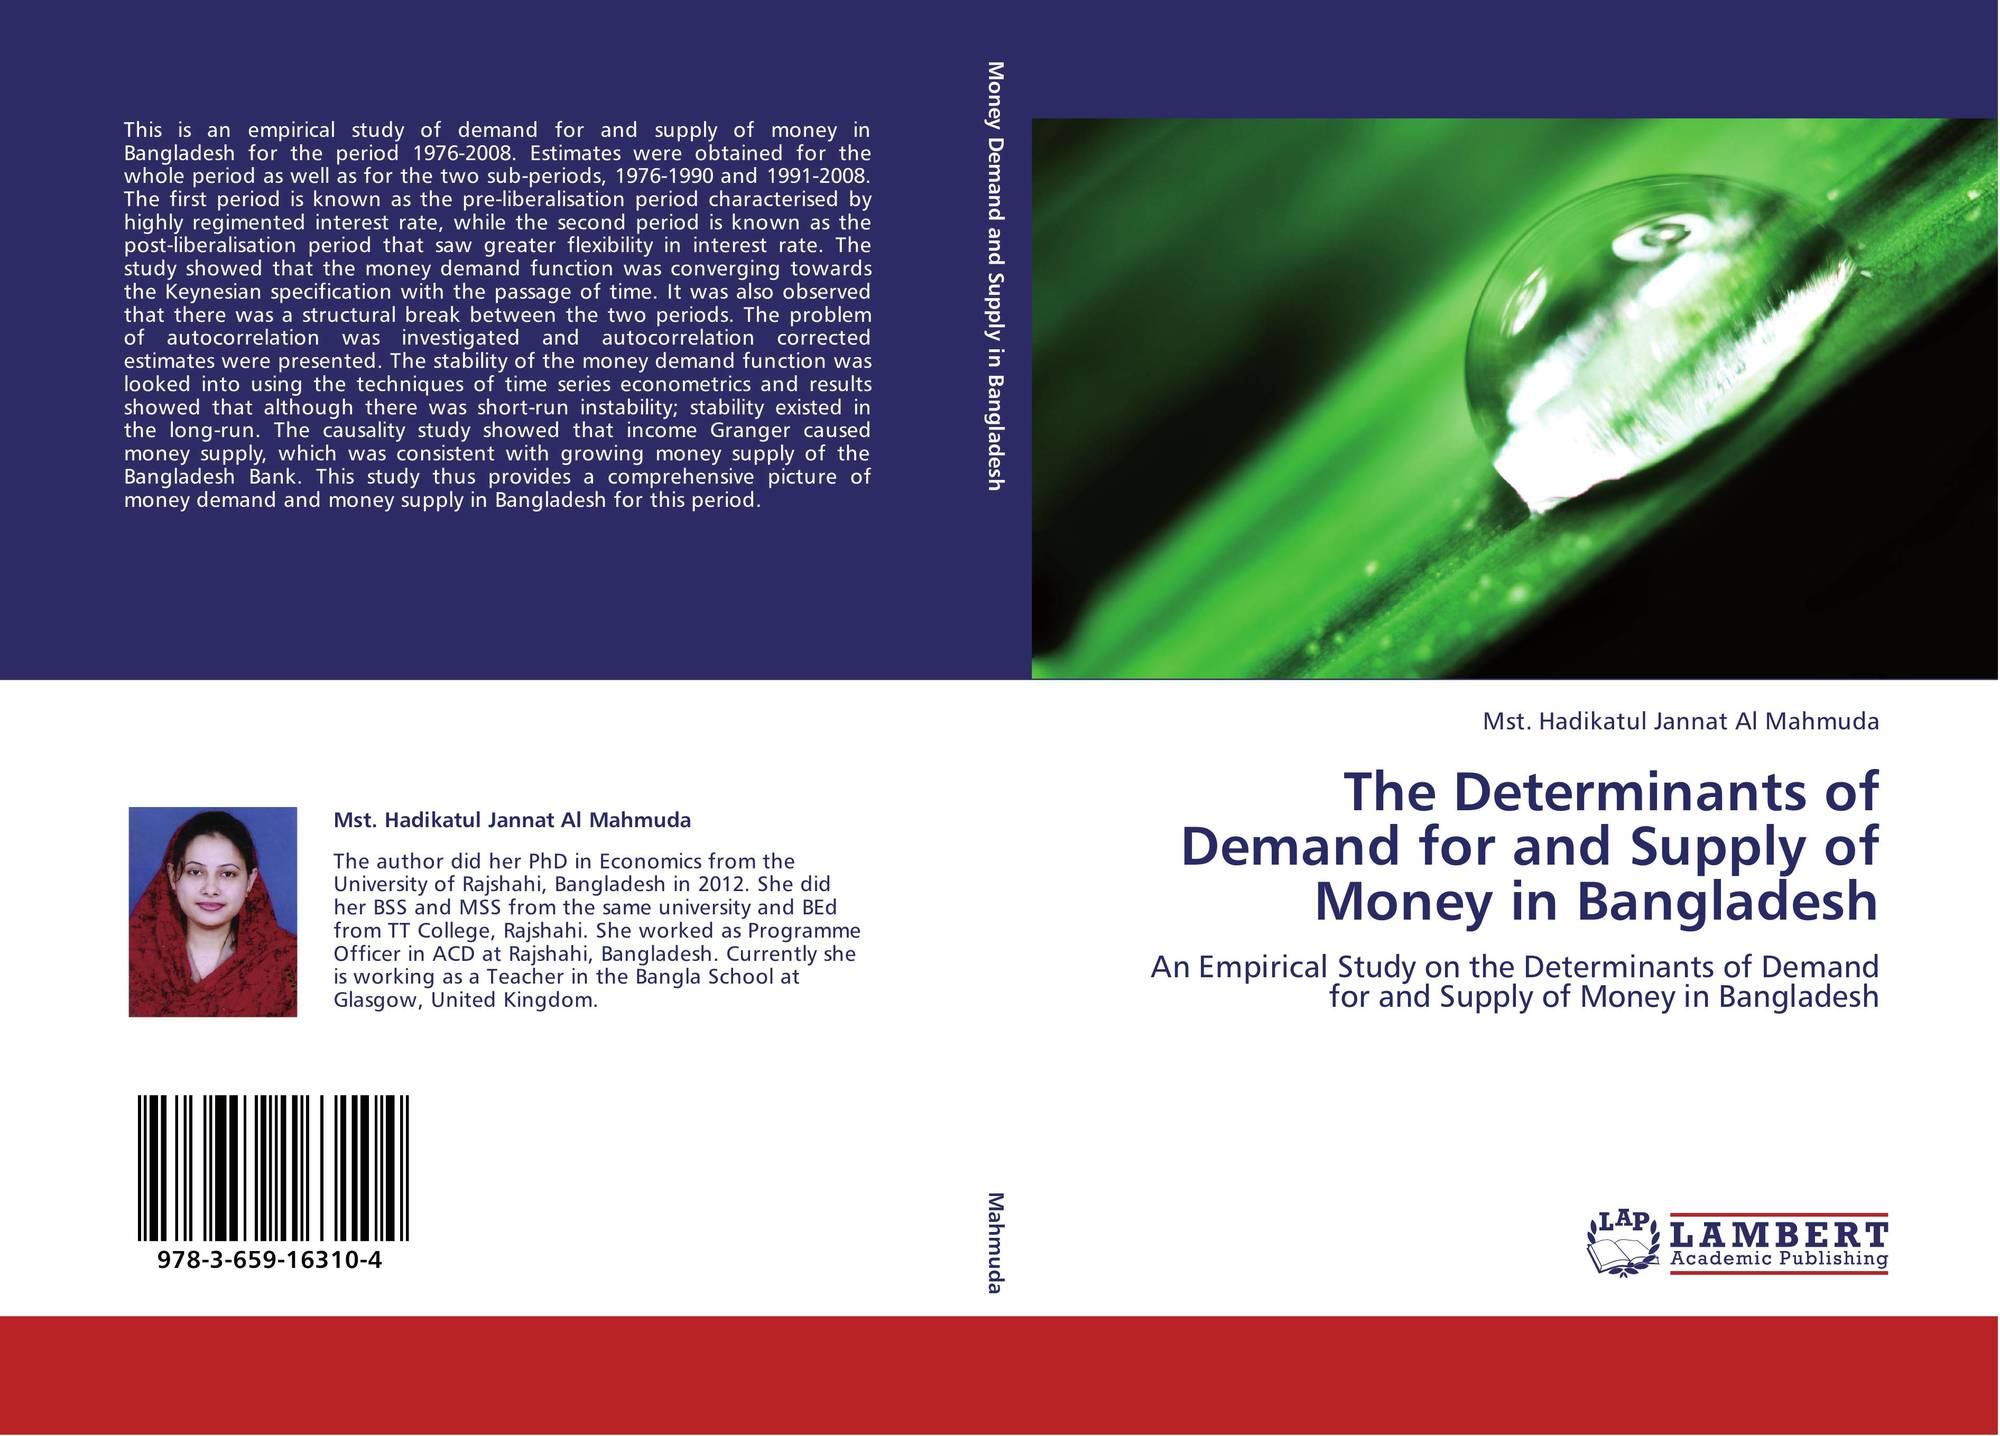 determinants of money demand in zimbabwe An empirical analysis of the determinants of private investment in zimbabwe wwwdynamicresearchjournalsorg 40 | page protection of property rights, poor enforcement of contracts etc), cash crisis, rampant corruption and nepotism,.